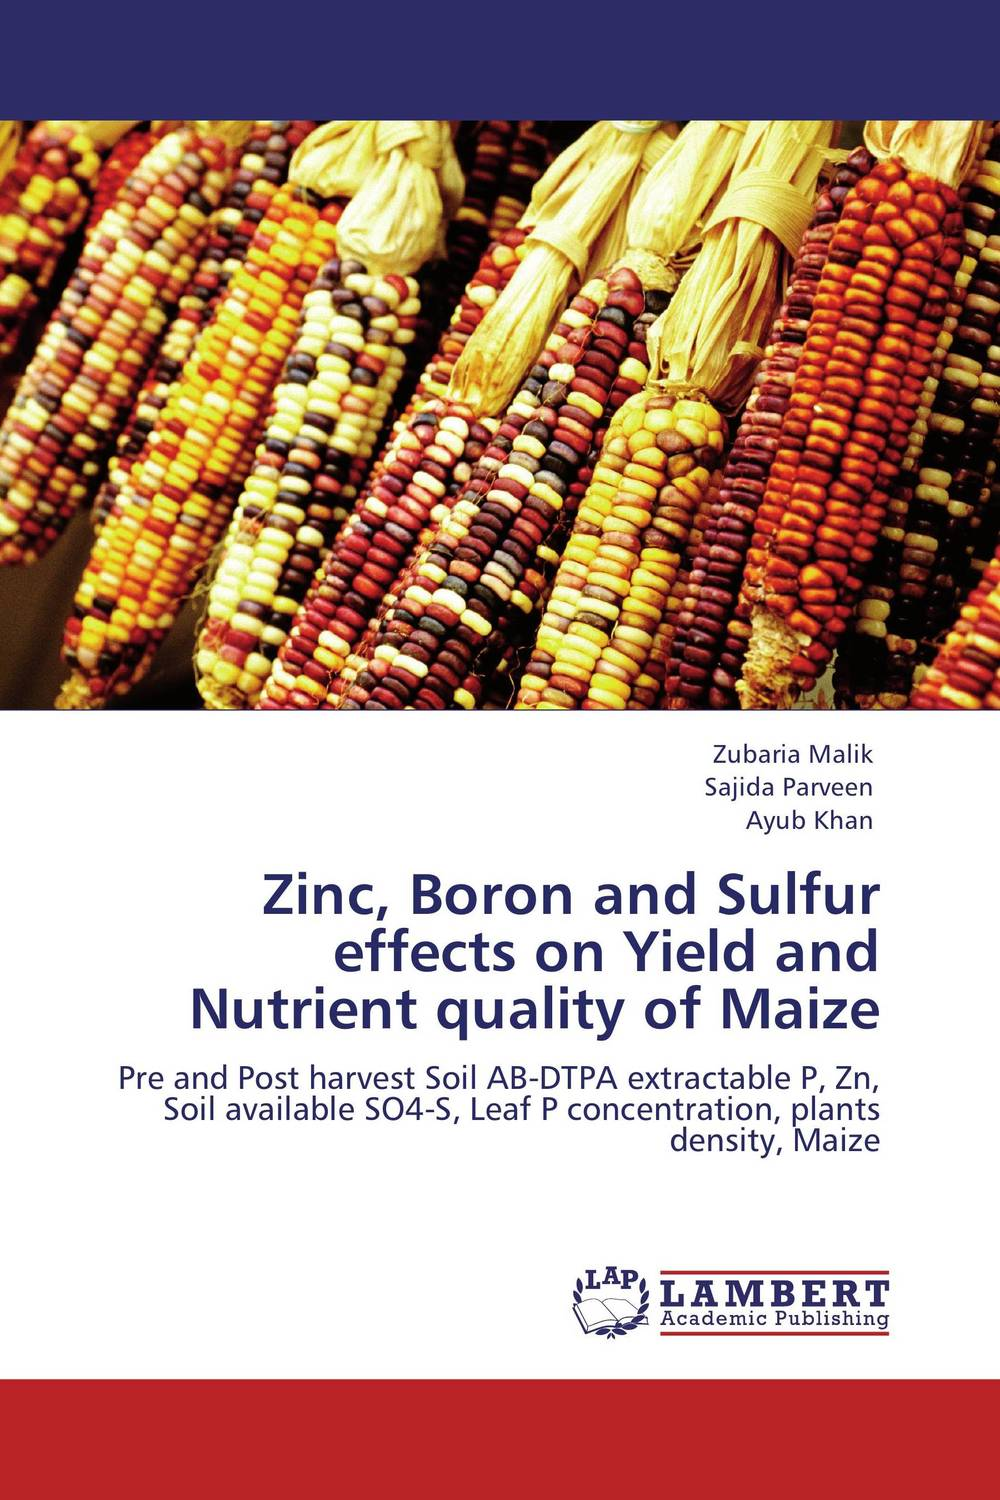 Zinc, Boron and Sulfur effects on Yield and Nutrient quality of Maize jaspal singh and ravinder pal singh effects of aging temperature and time on synthesis of hydroxyapatite